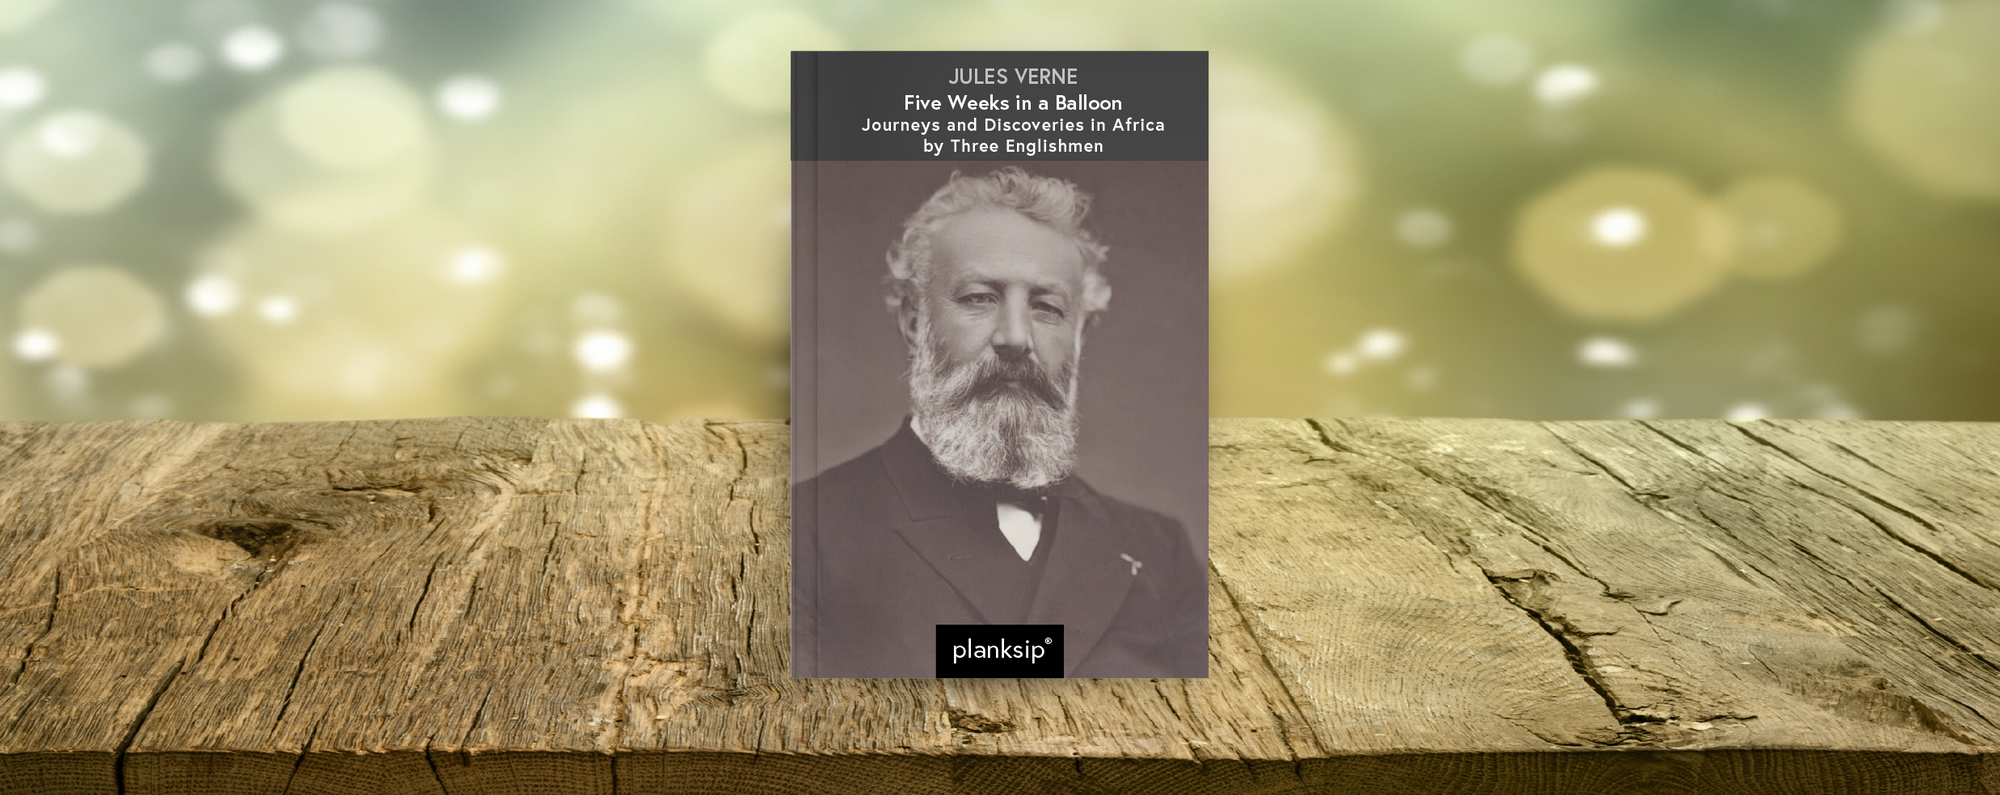 Five Weeks in a Balloon by Jules Verne (1828-1905). Published by planksip